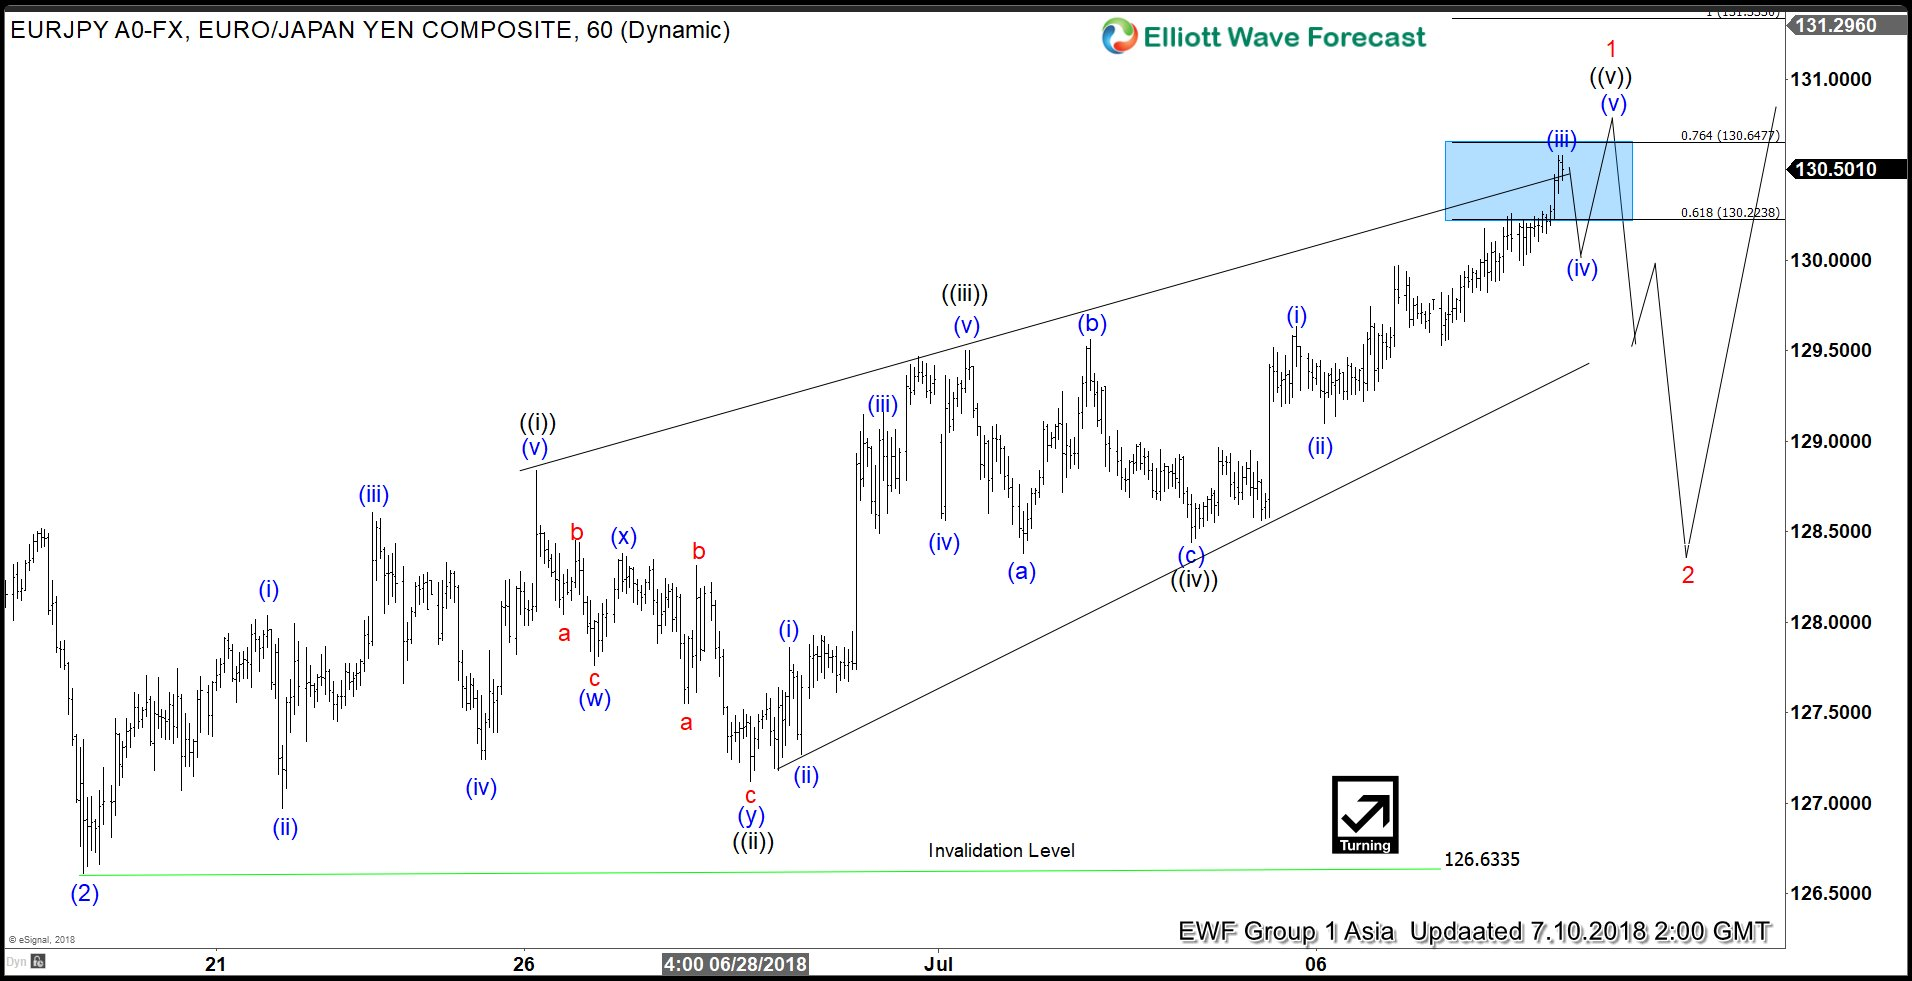 EURJPY Elliott Wave Analysis: Pullback can Provide Buying Opportunity